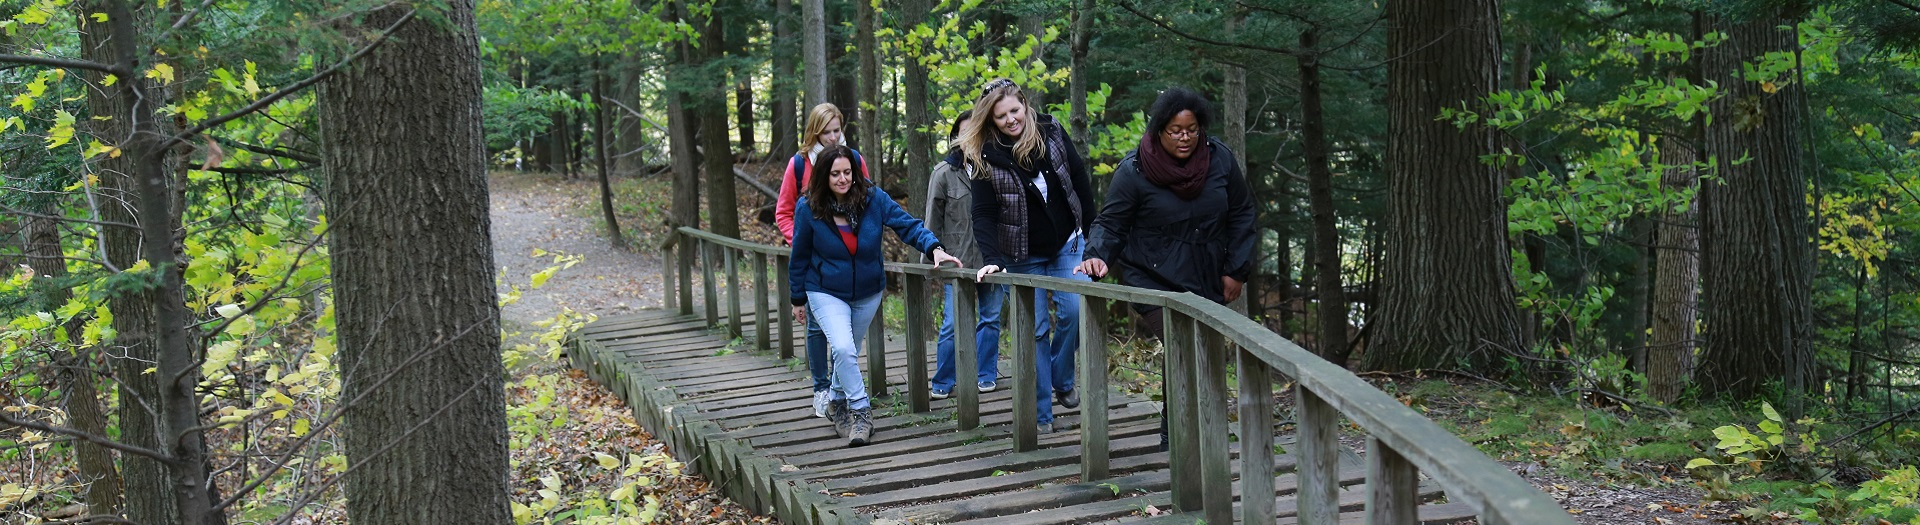 visitors explore a trail at Kortright Centre for Conservation